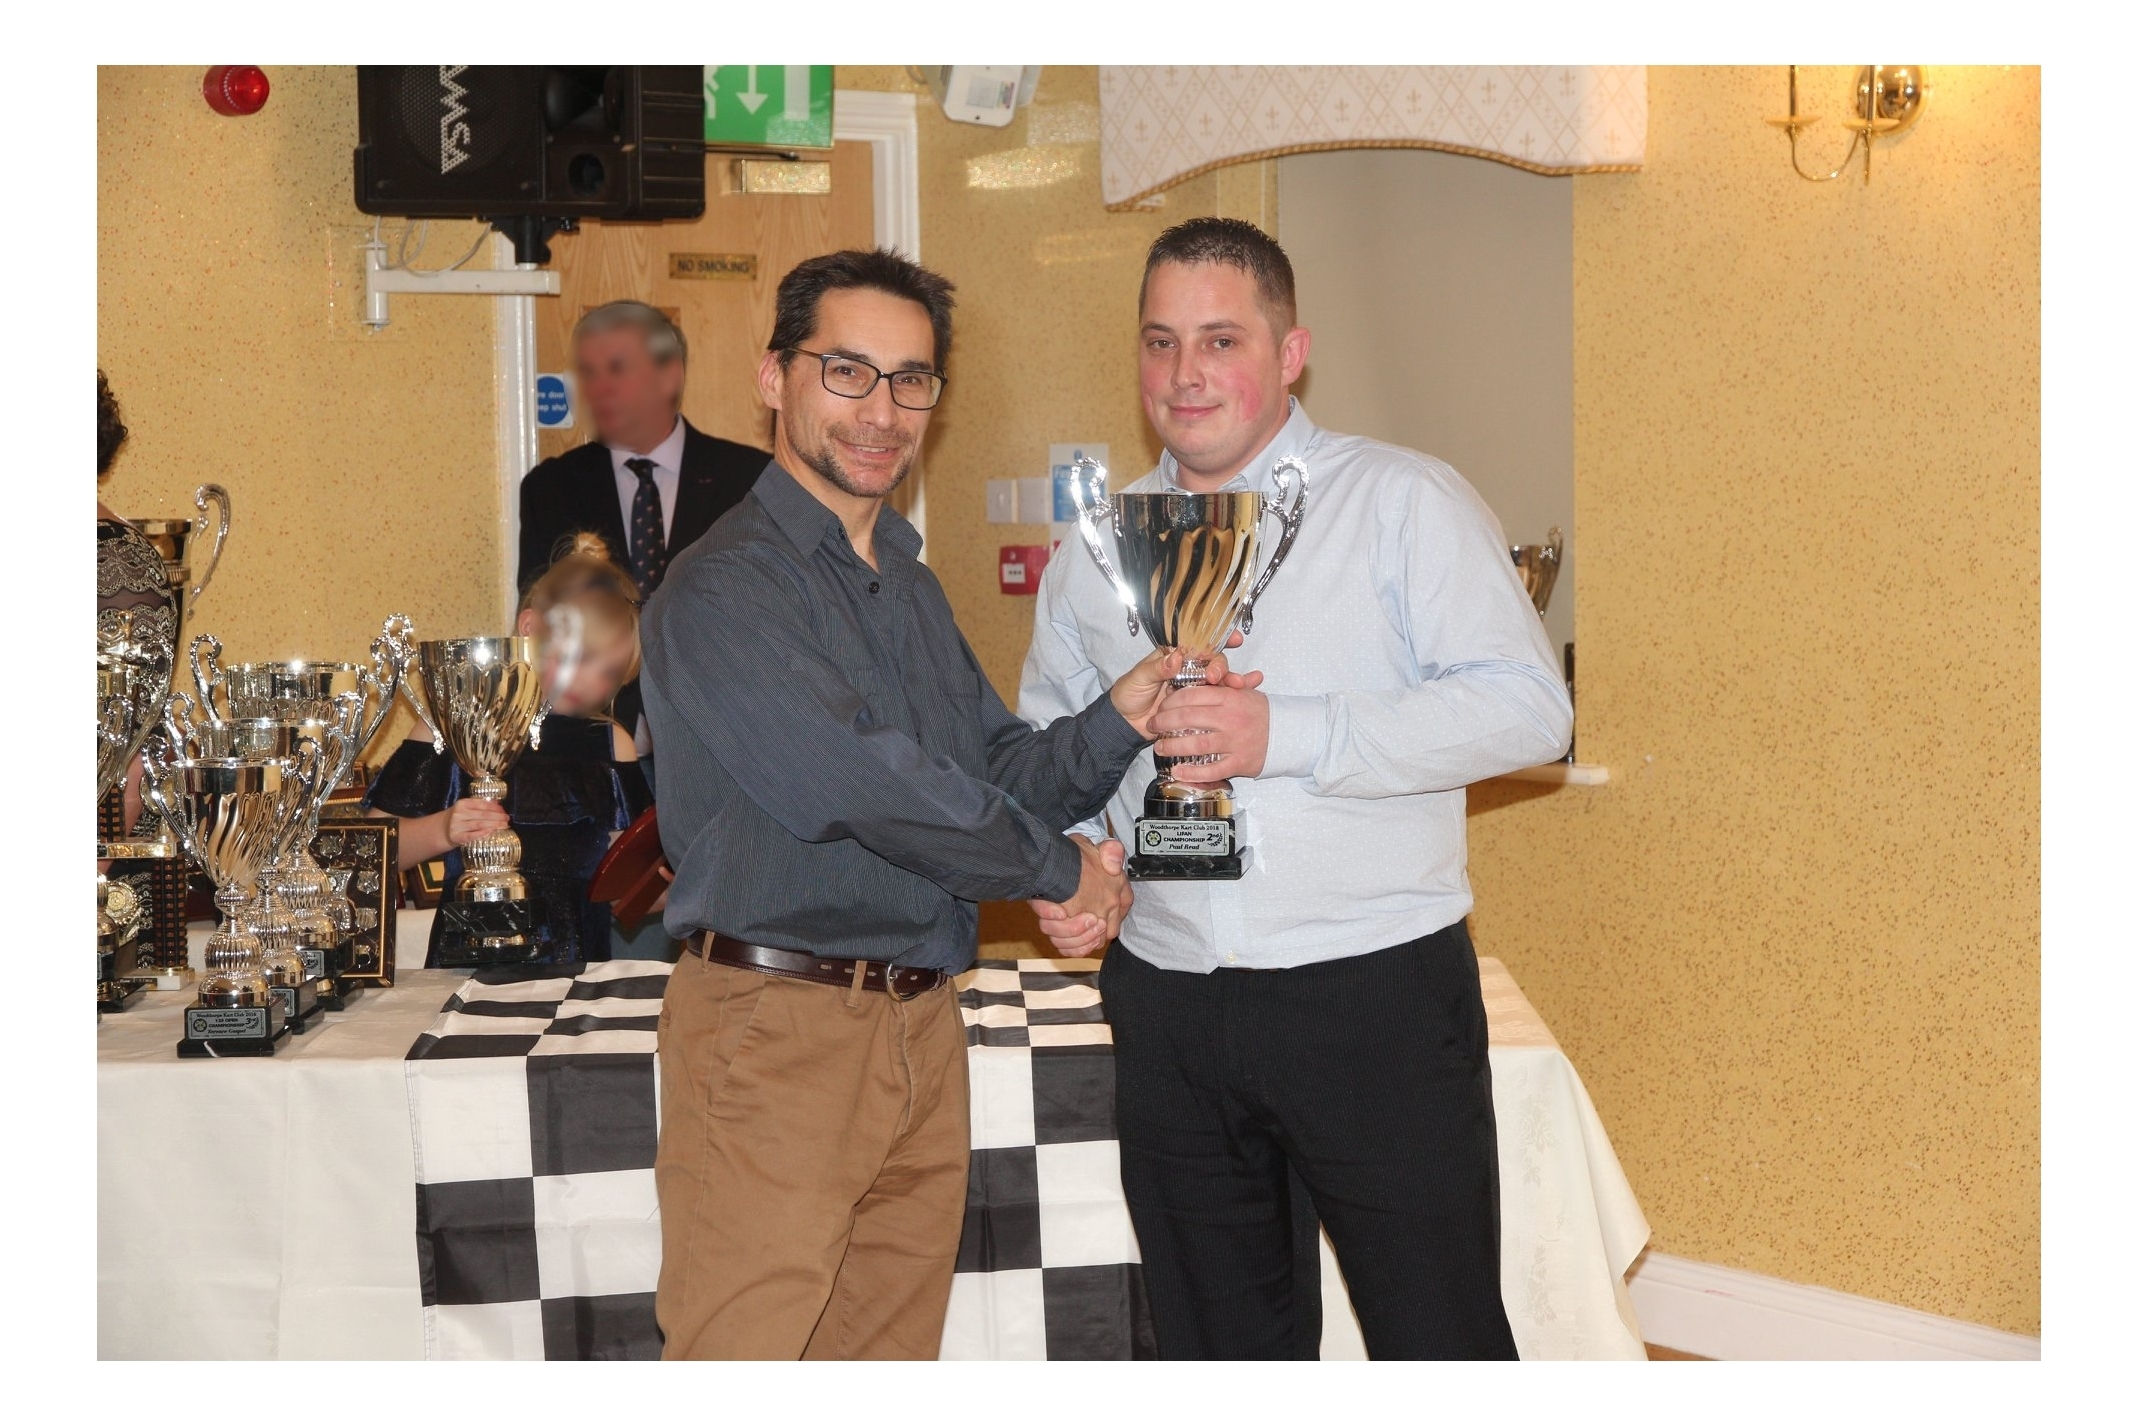 Paul Woodthorpe kart presentation